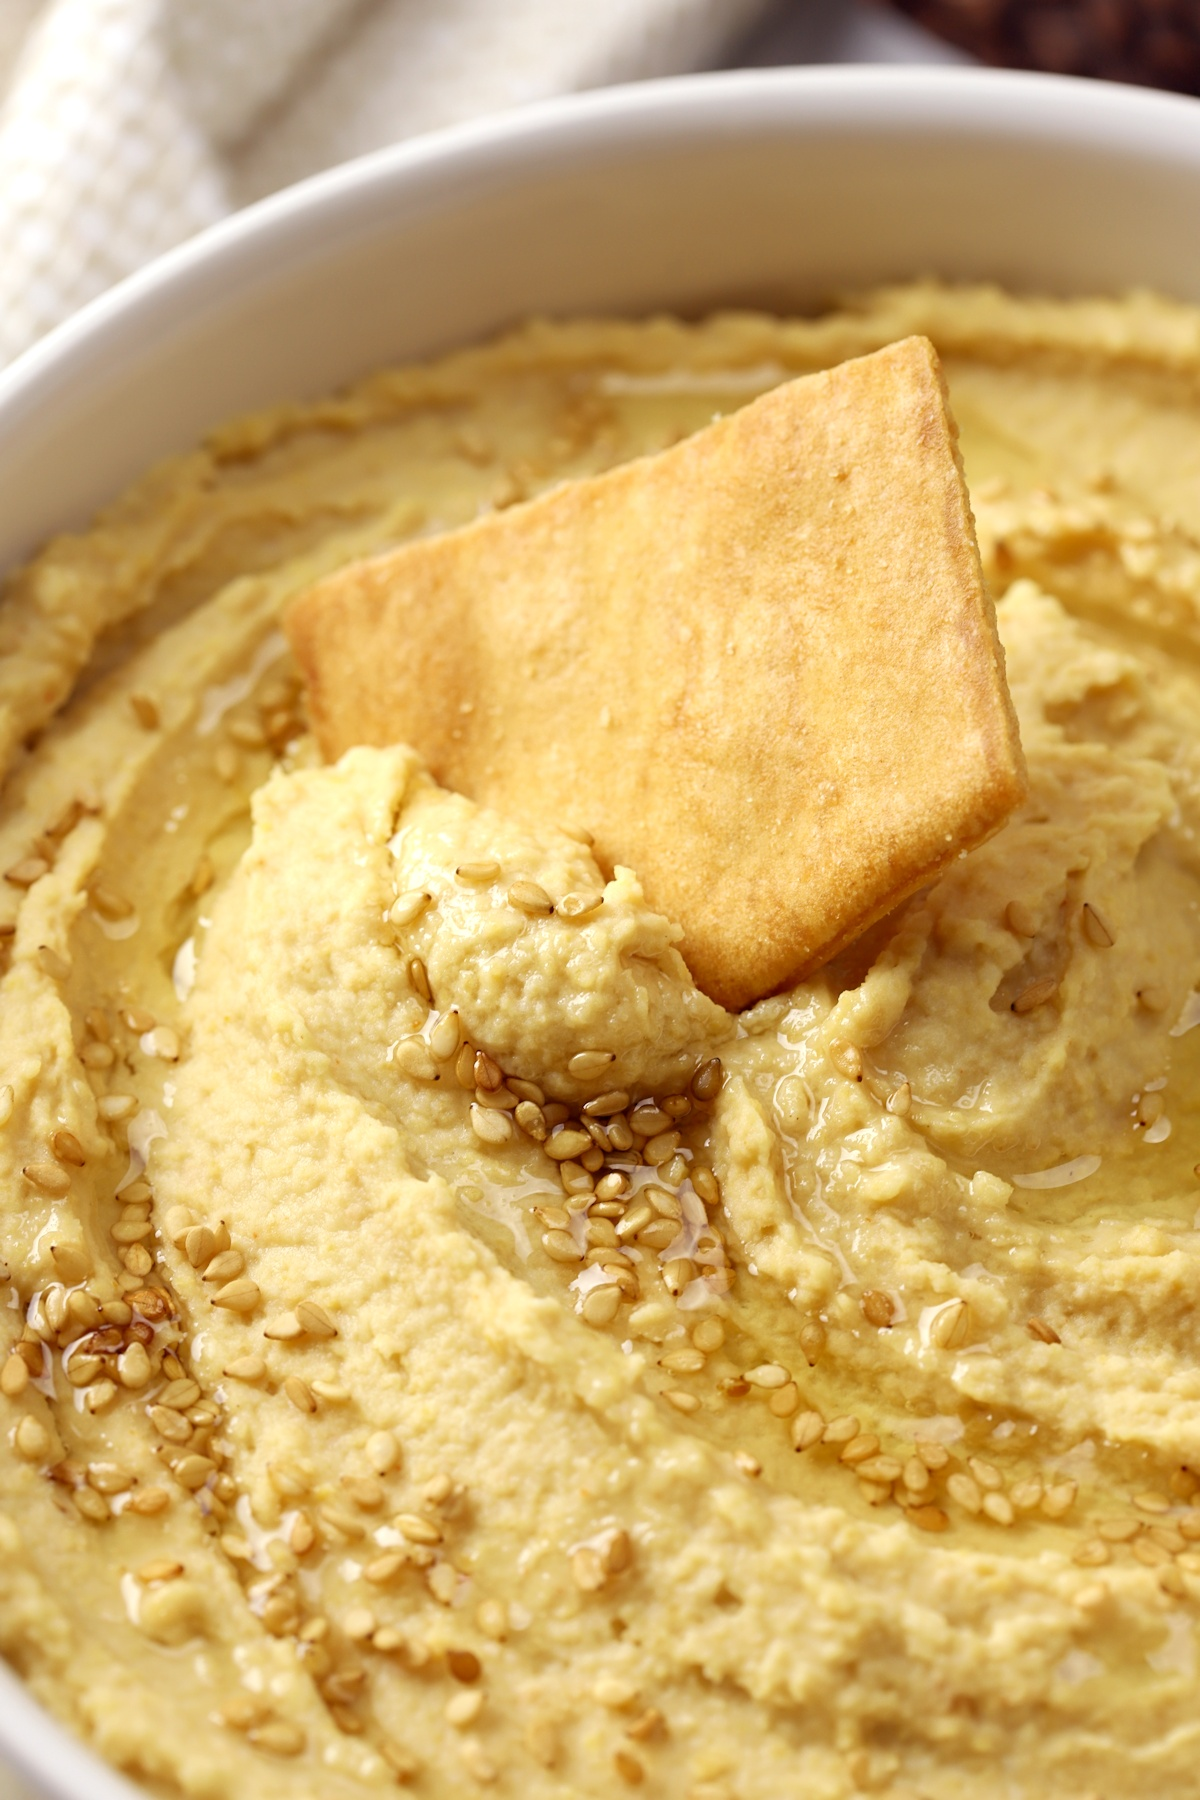 Pita chip scooping hummus out of a bowl.